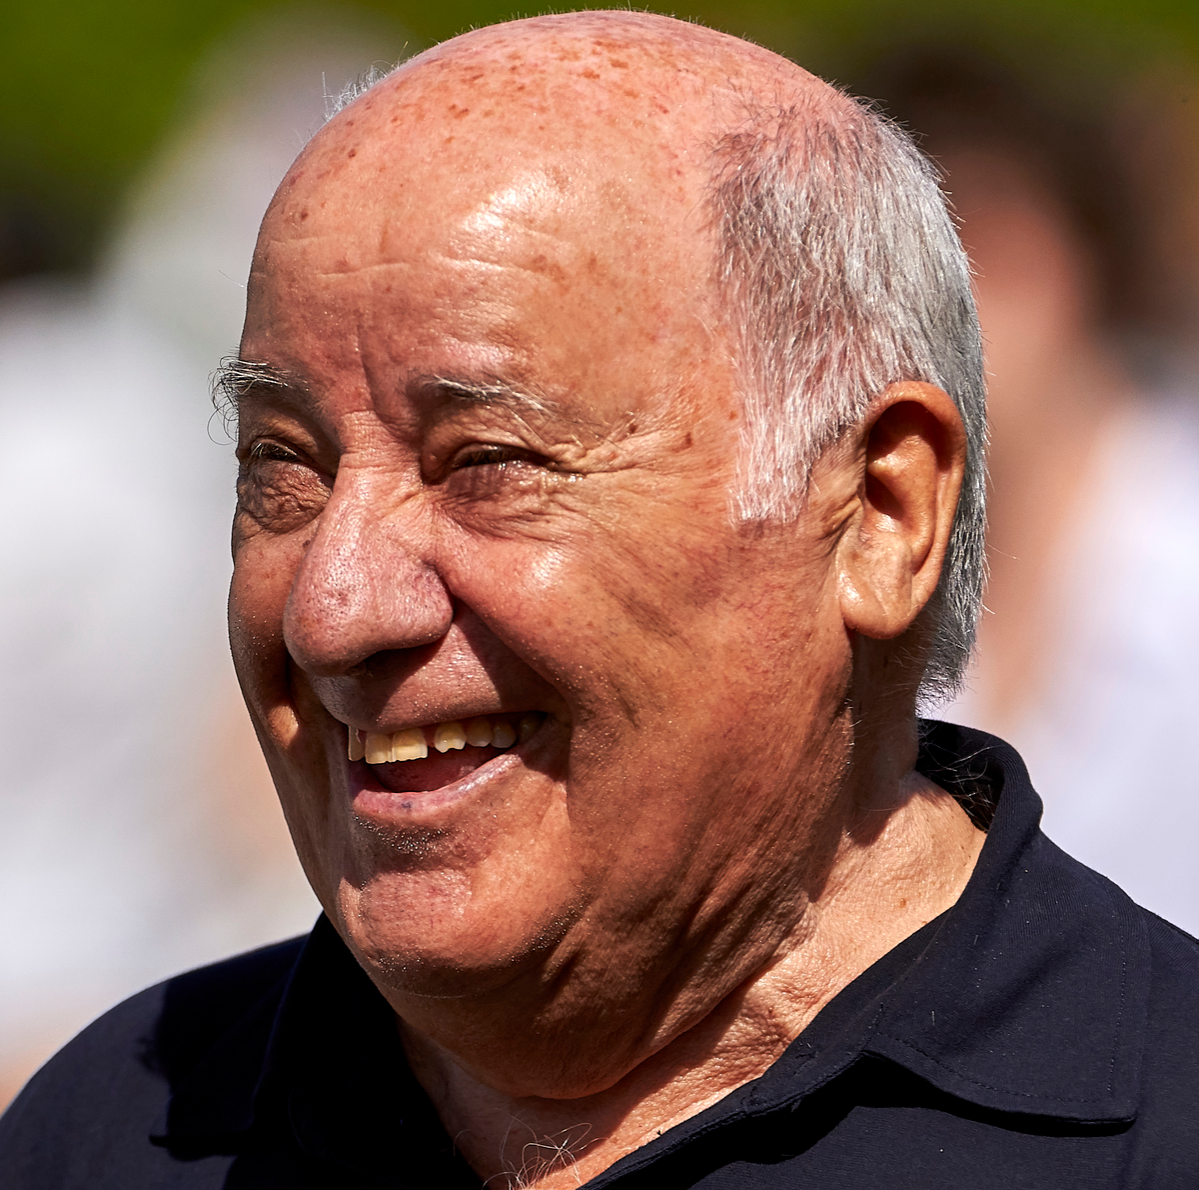 Amancio Ortega attends during CSI Casas Novas Horse Jumping Competition on July 29, 2017 in A Coruna, Spain.